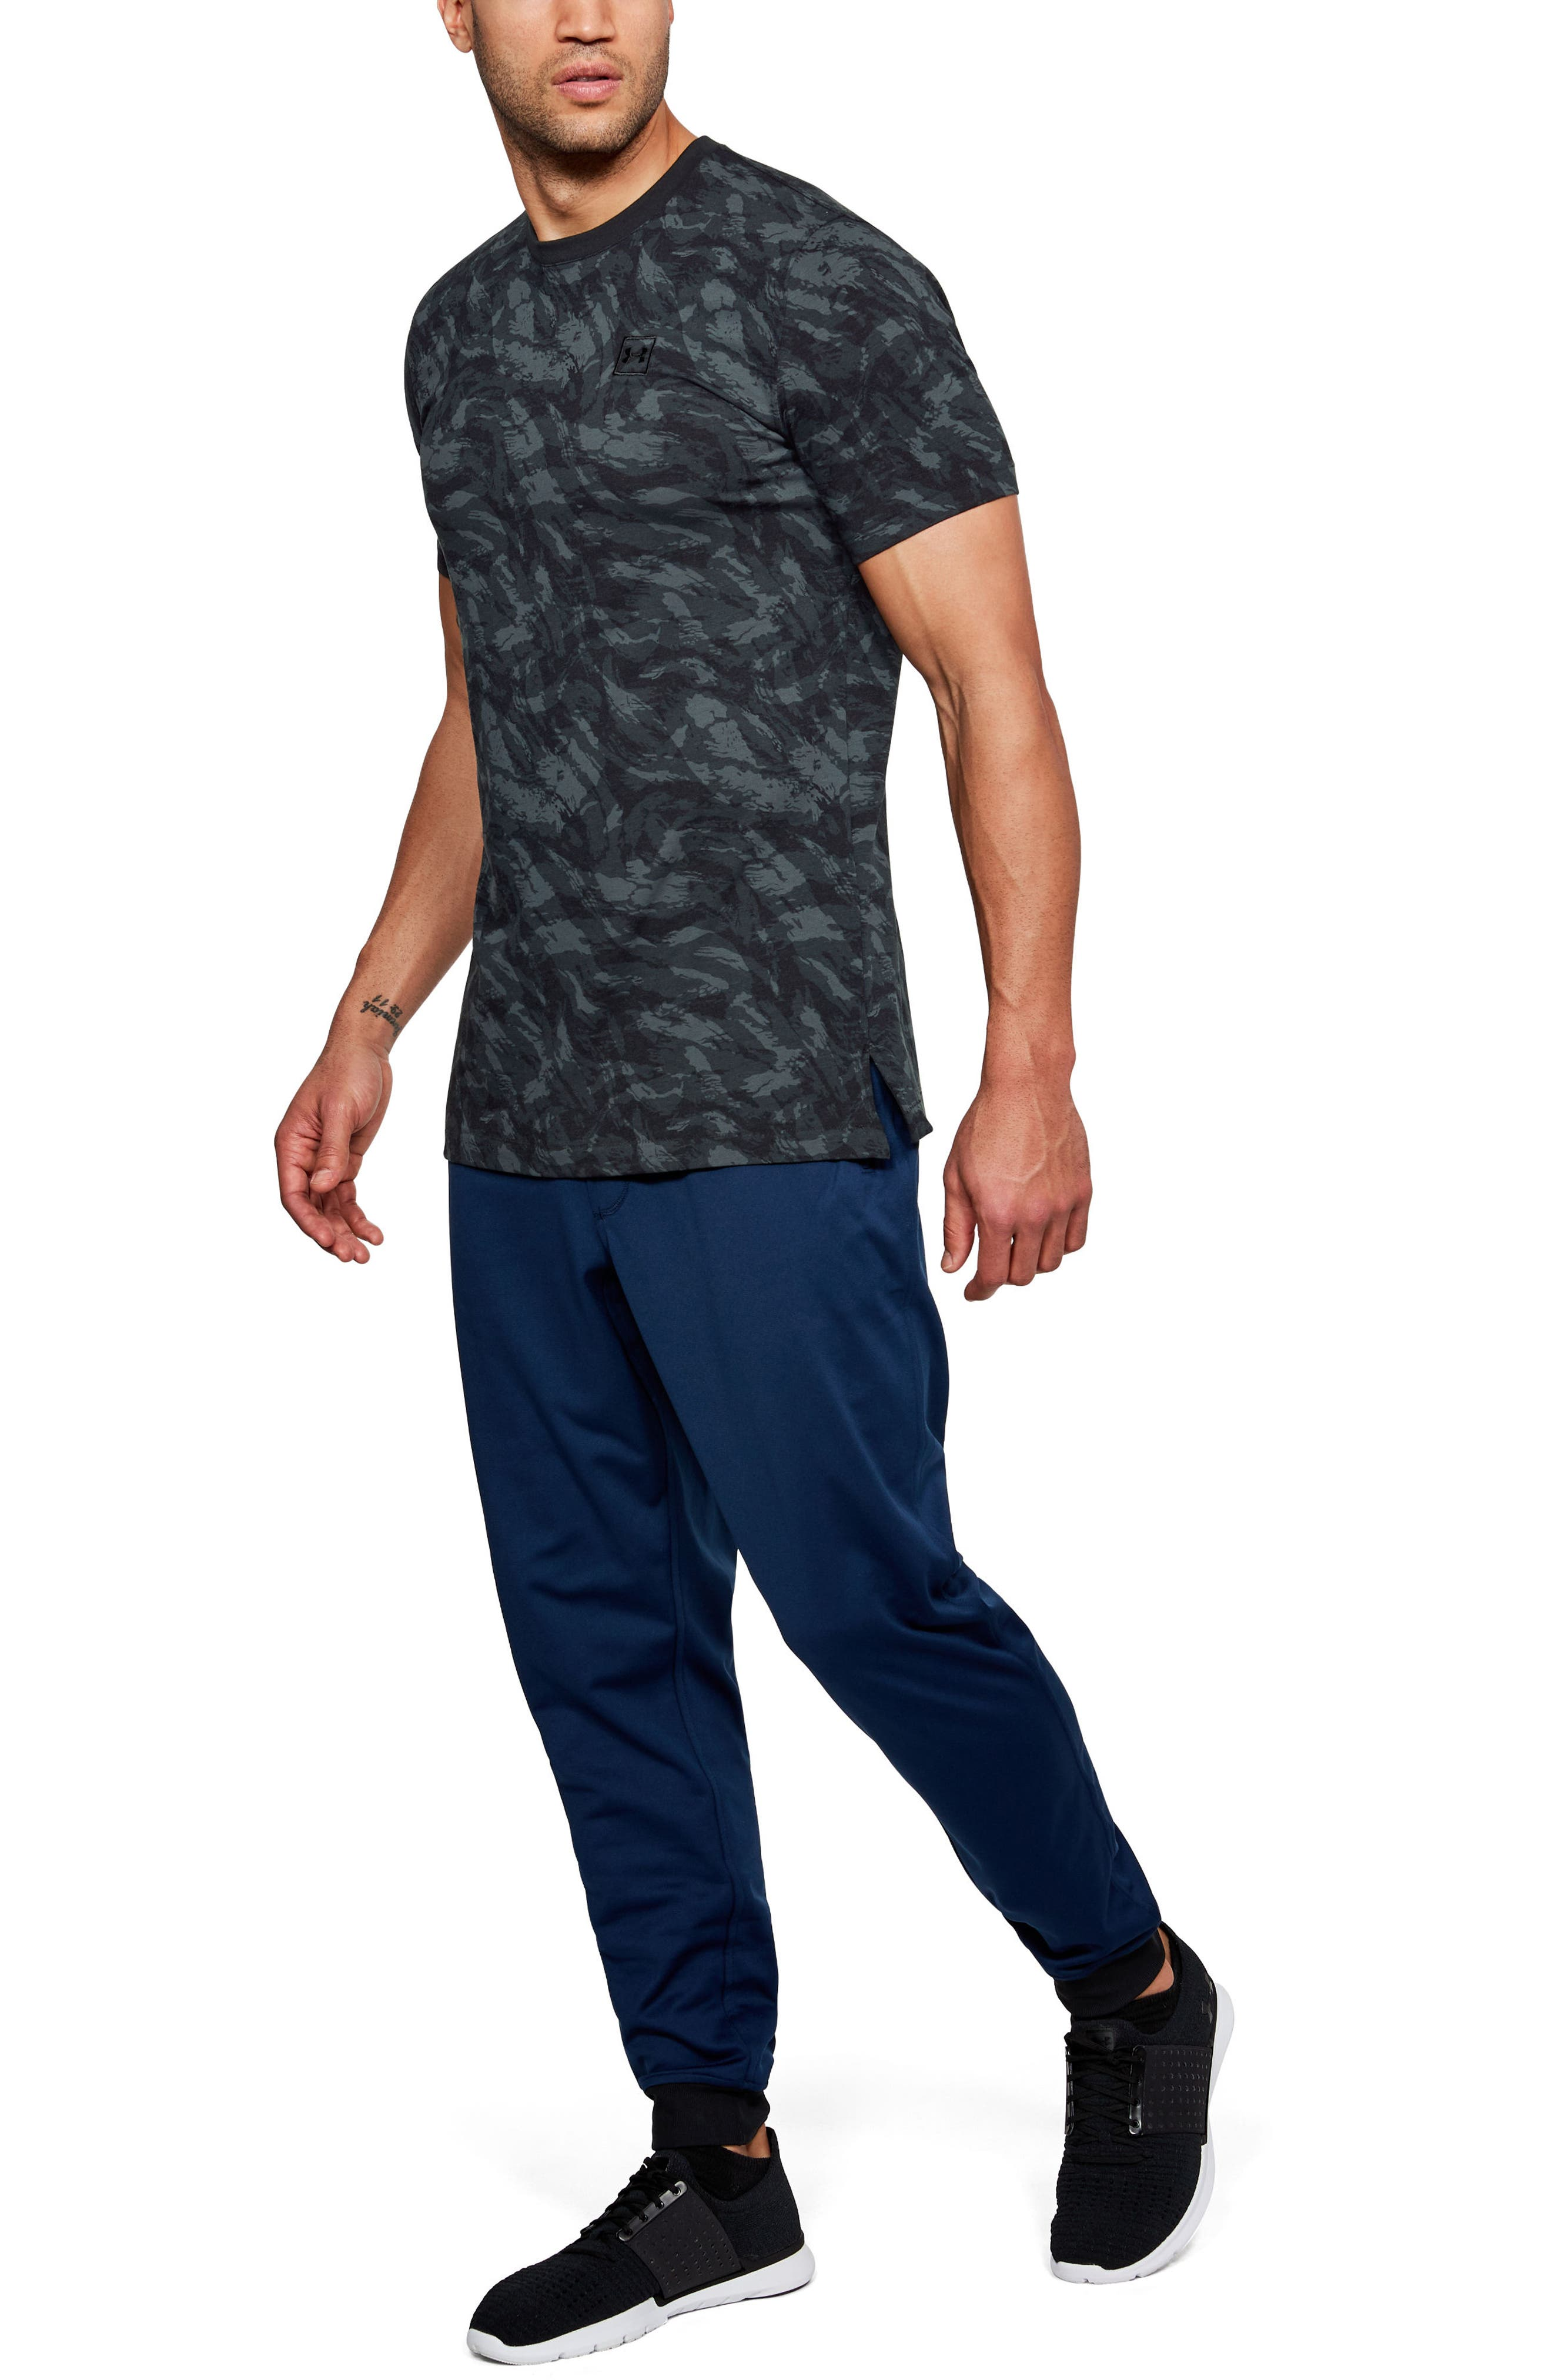 Sportstyle Print Charged Cotton<sup>®</sup> Fitted T-Shirt,                             Alternate thumbnail 4, color,                             Black/ Black